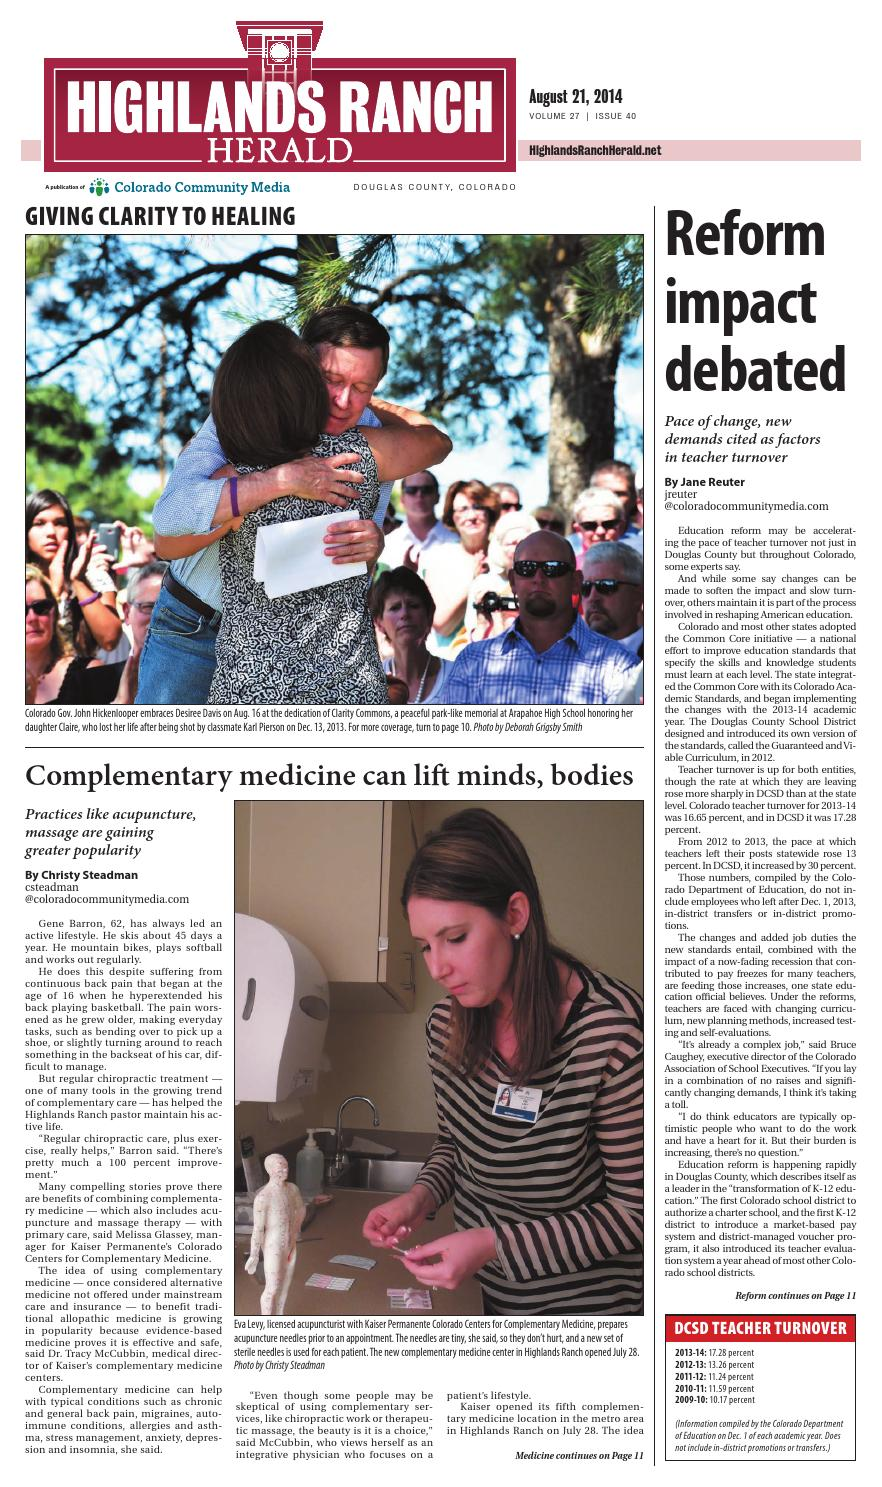 Highlands ranch herald 0821 by Colorado Community Media - issuu